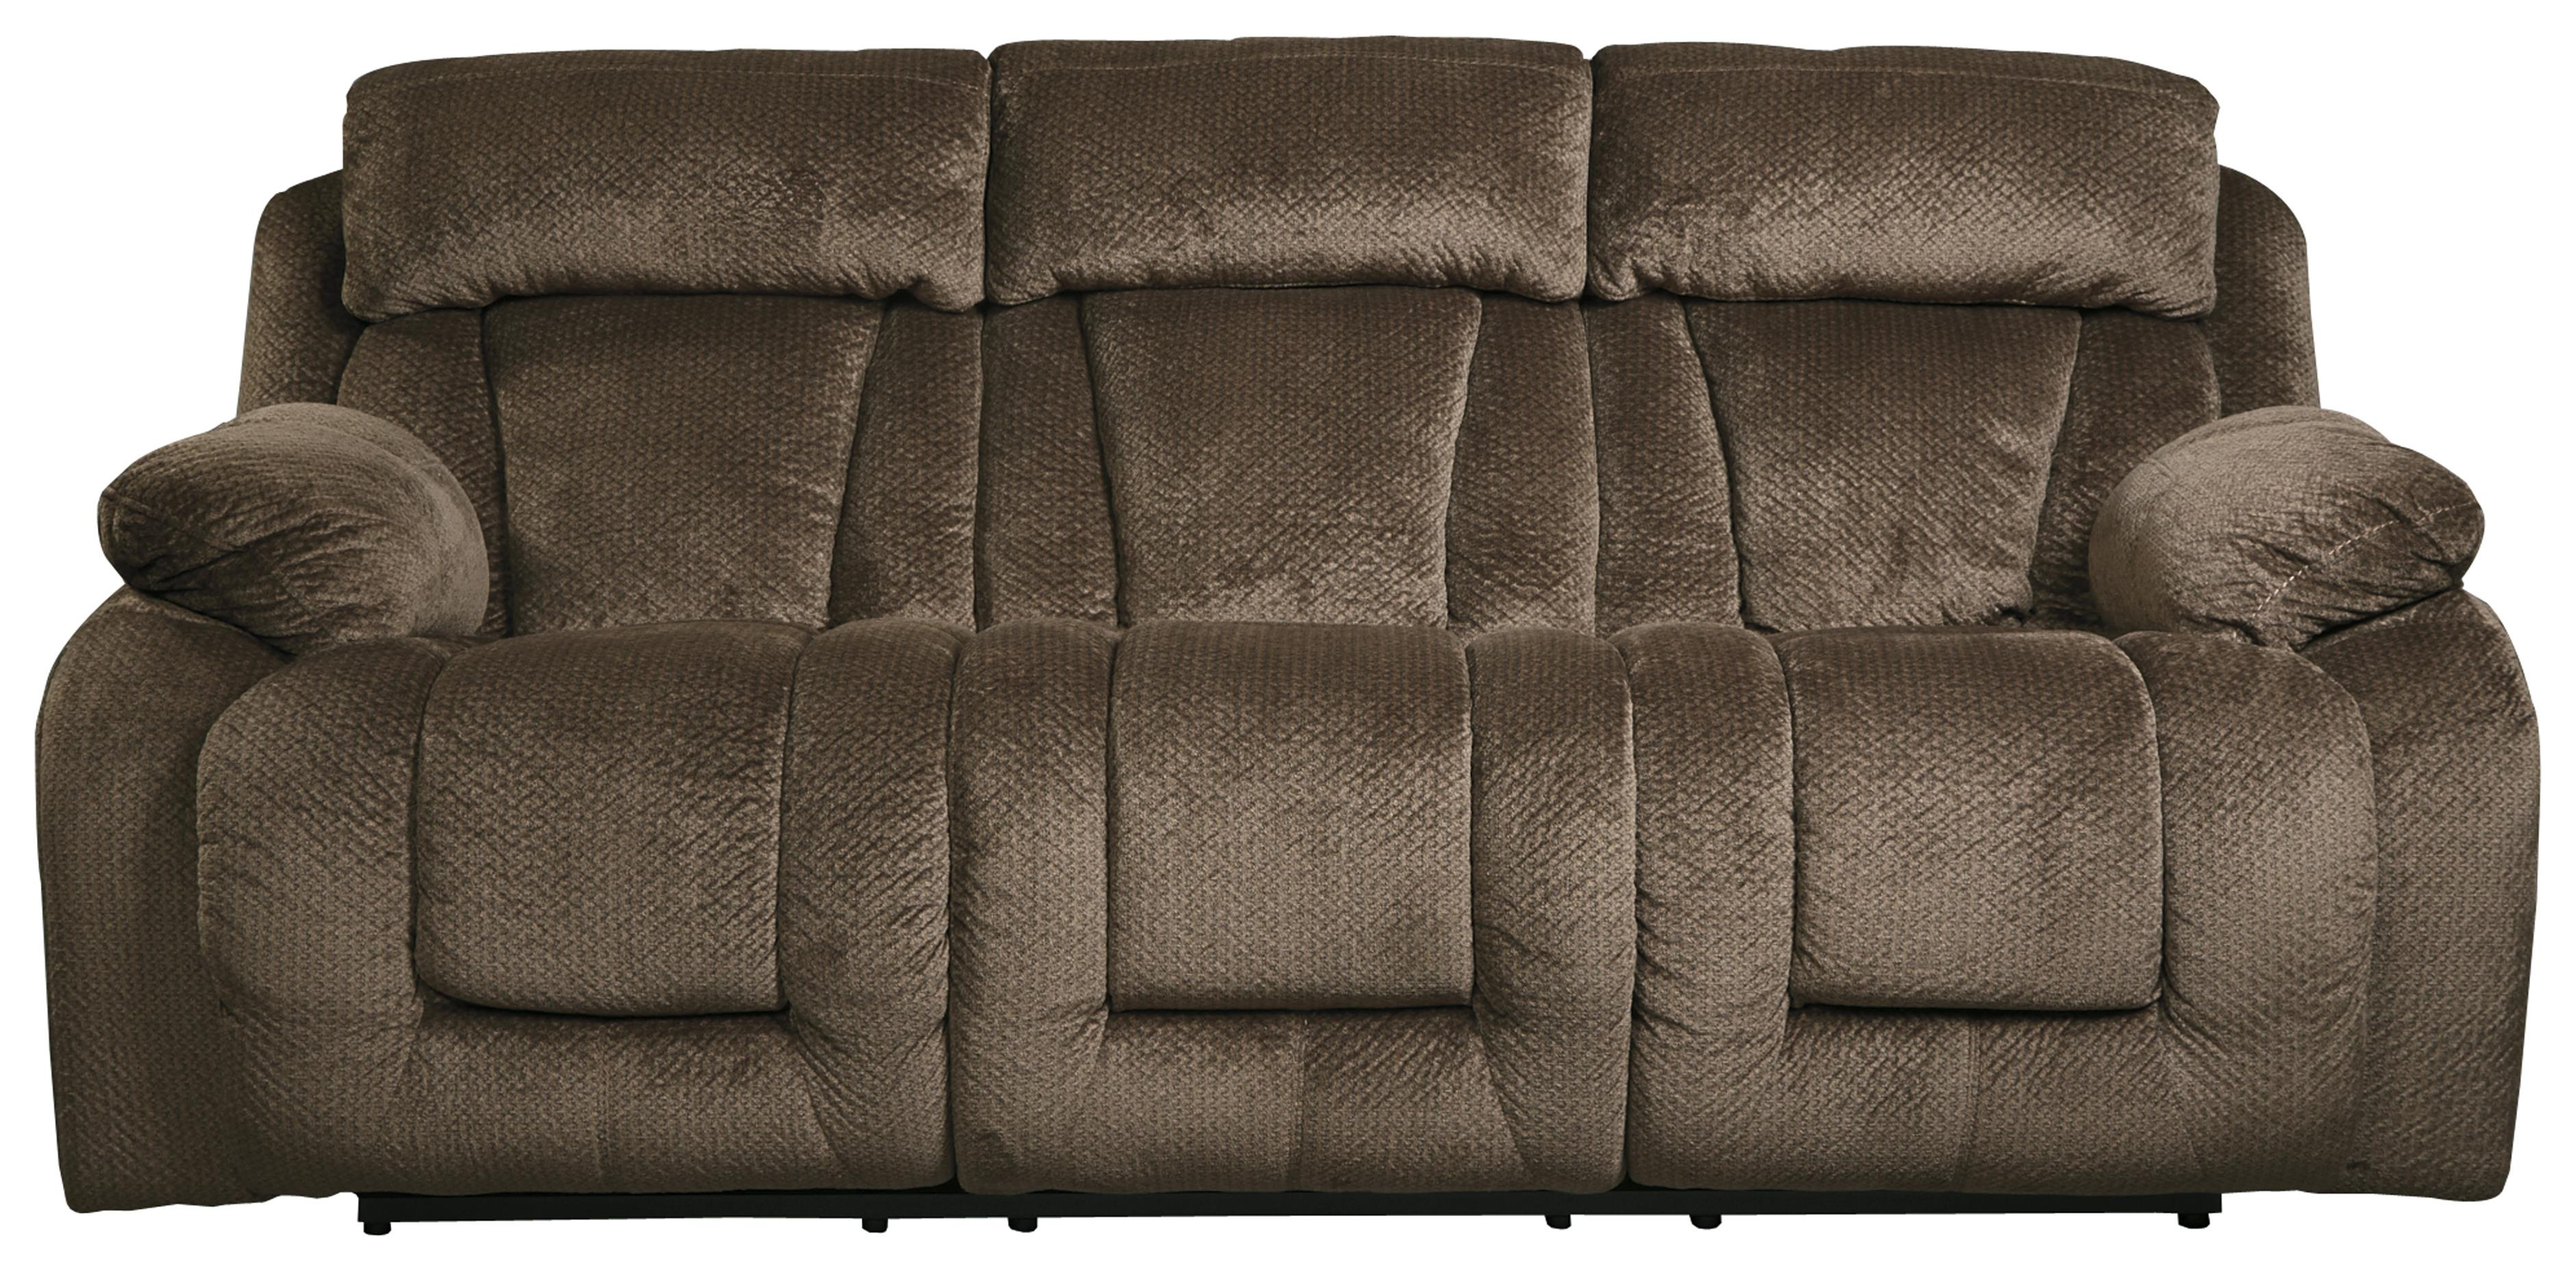 Signature Design by Ashley Stricklin Reclining Power Sofa - Item Number: 8650387